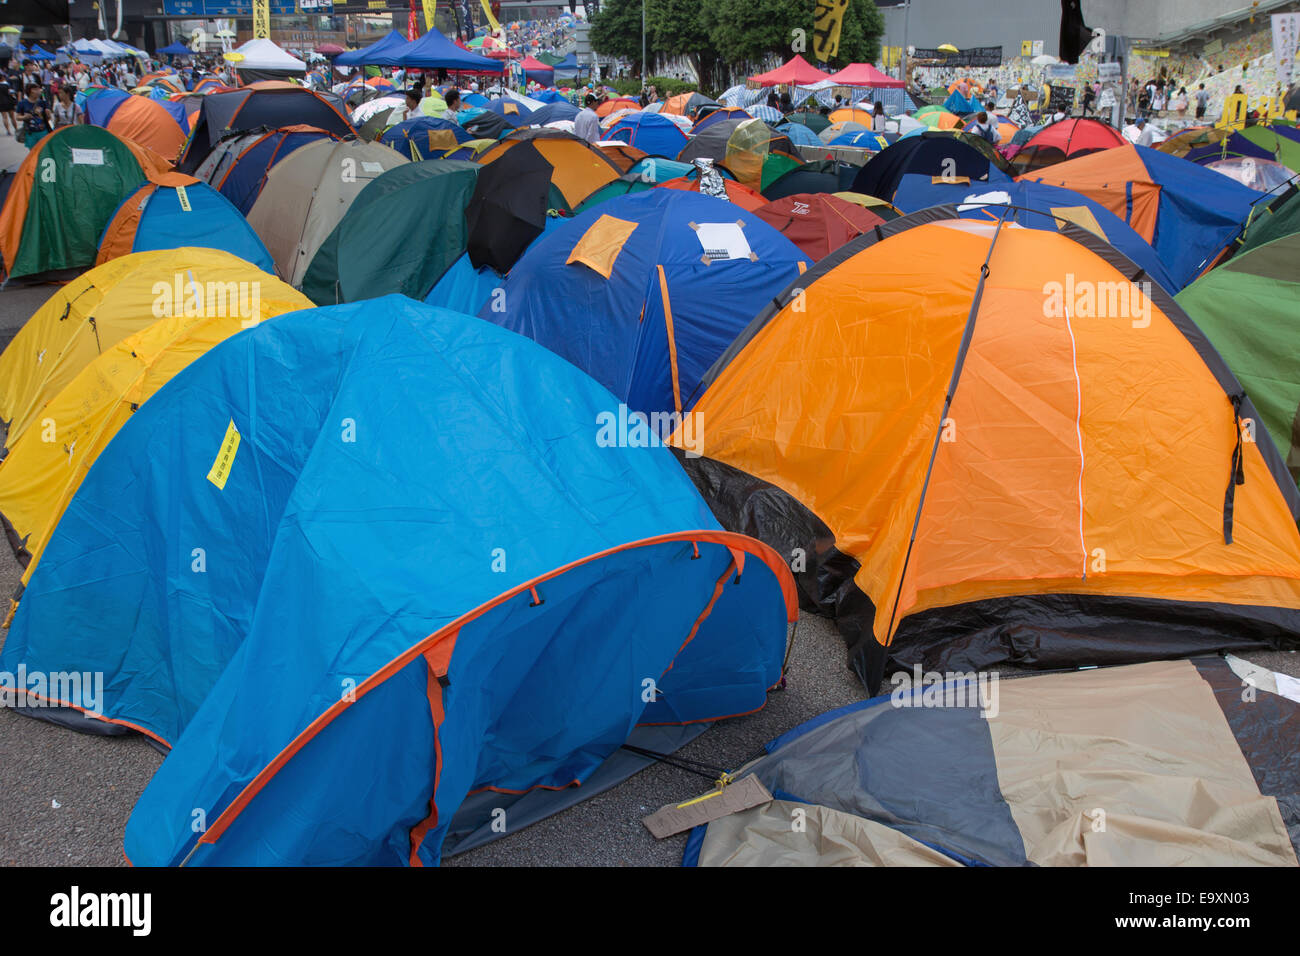 Tents on the road - Hong Kong Protests - Stock Image